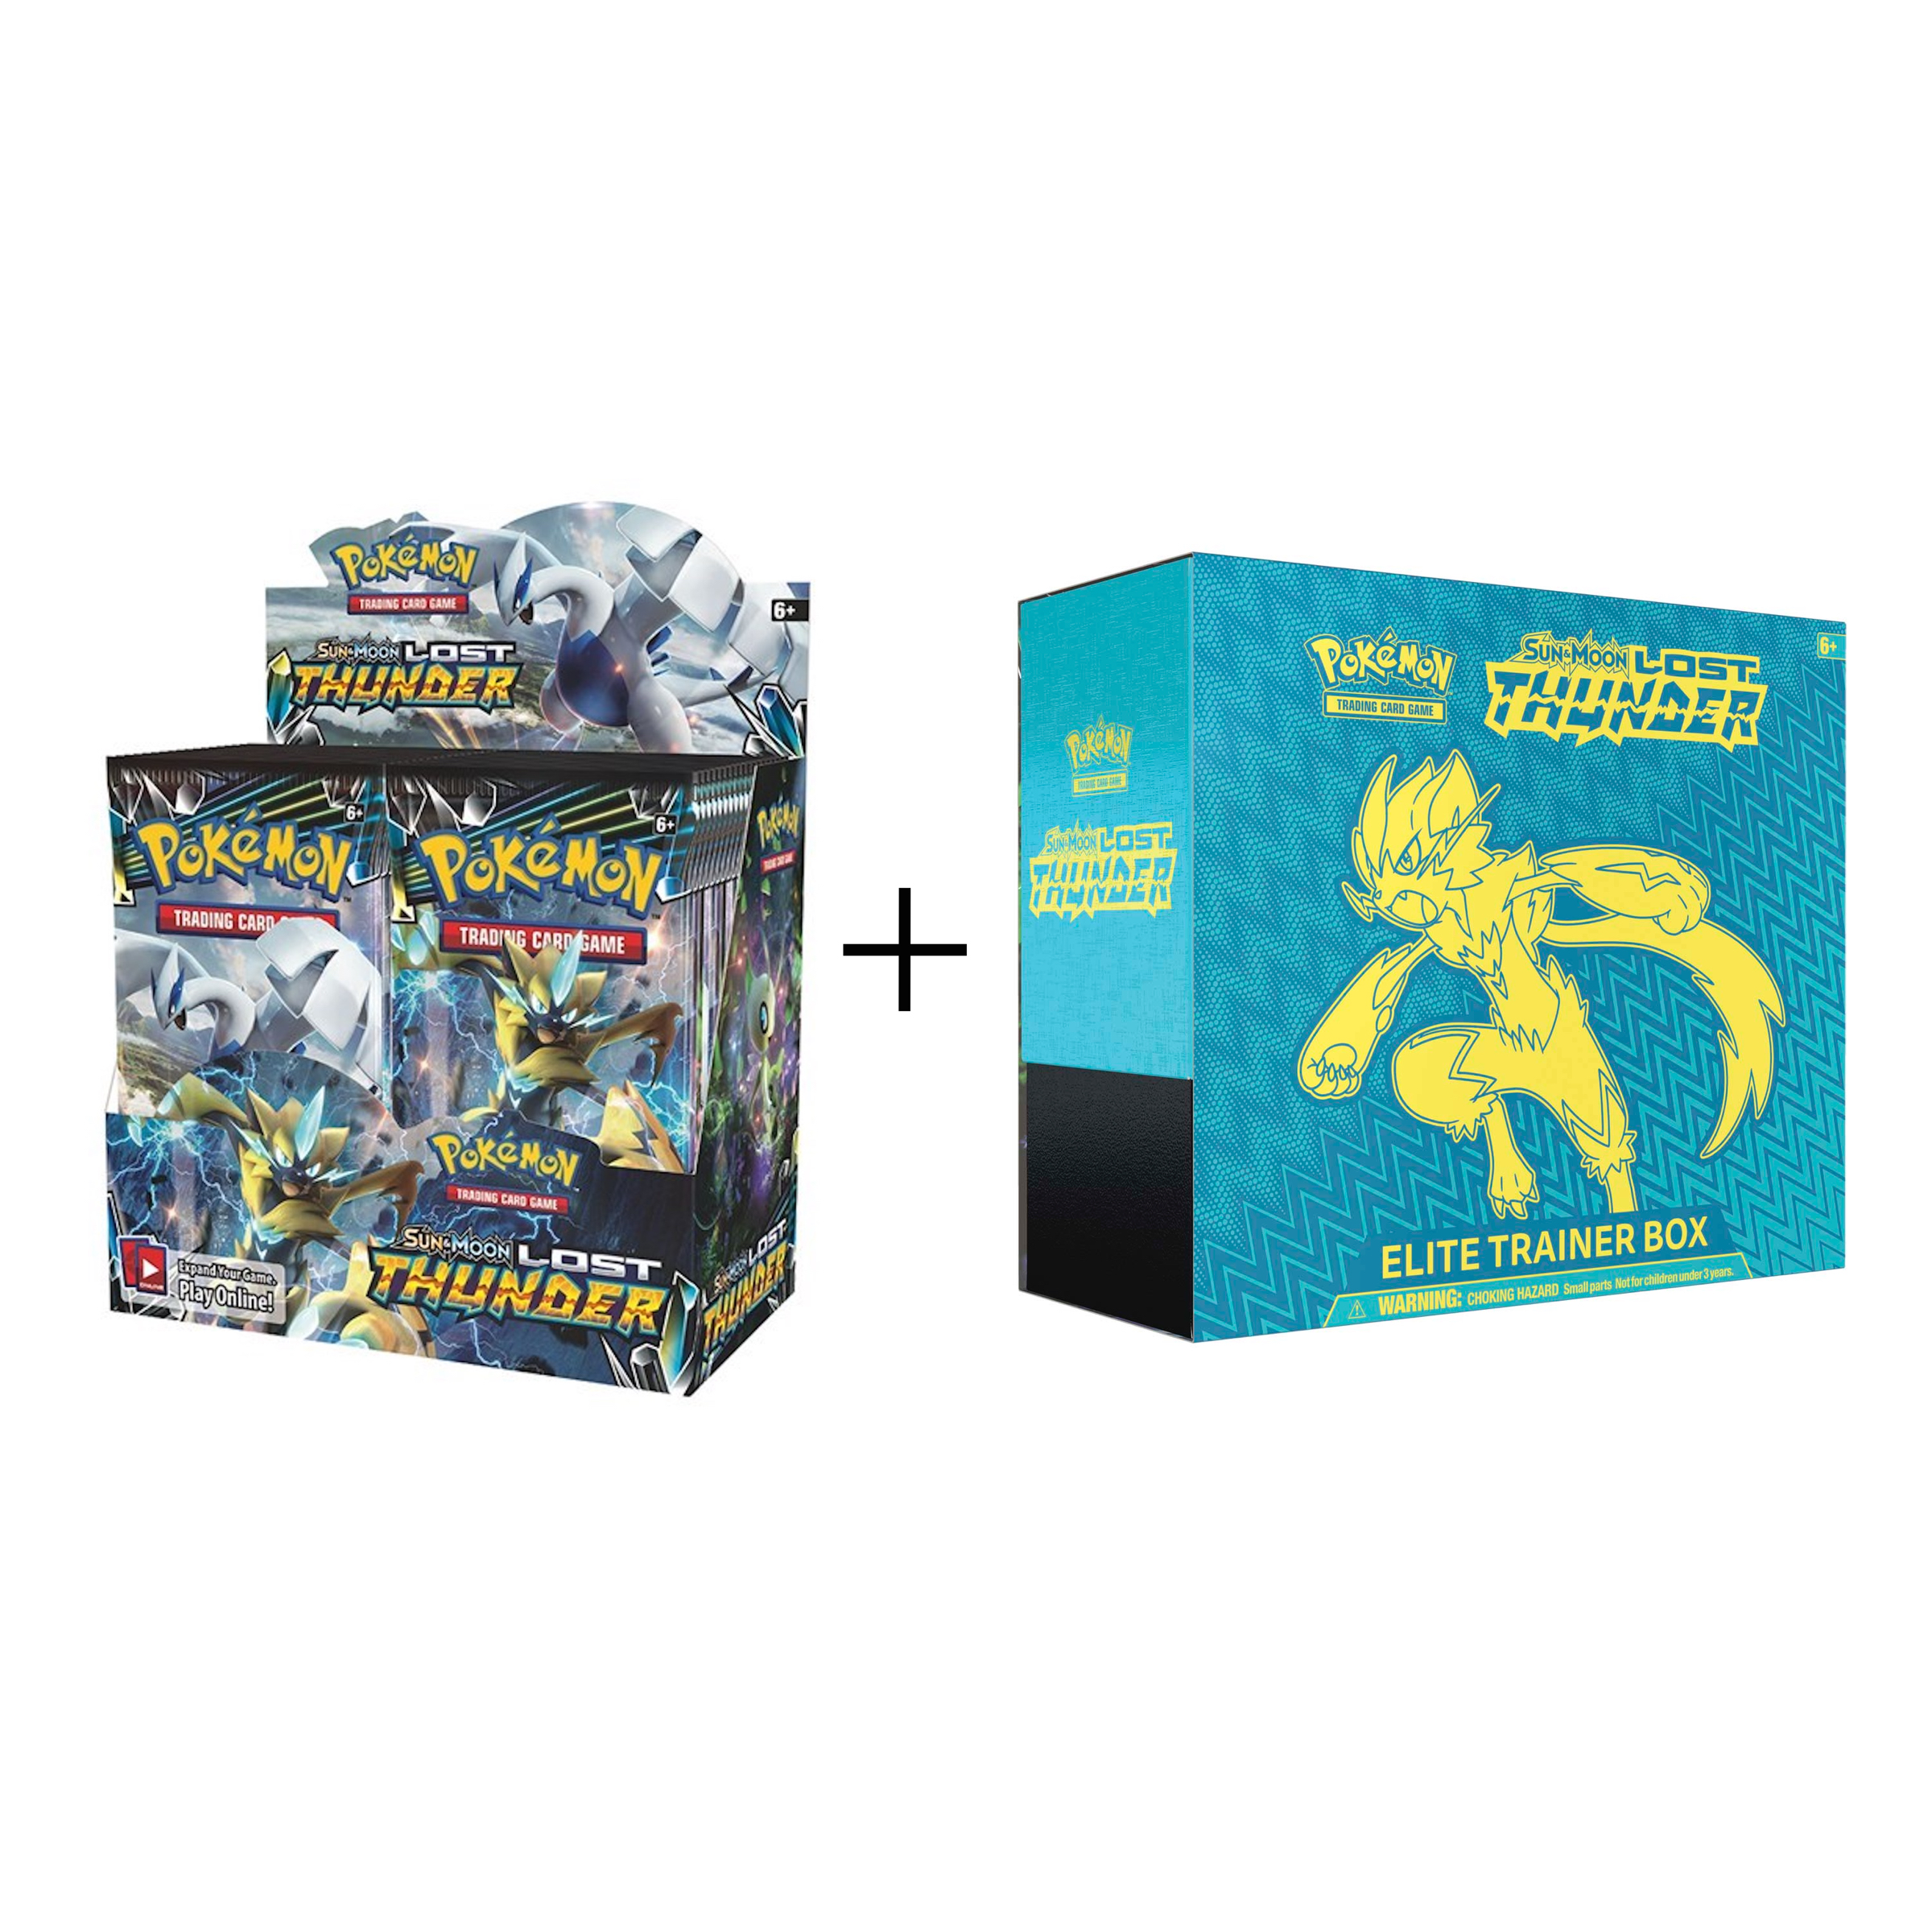 Pokemon TCG: Sun & Moon Lost Thunder Booster Box and Elite Trainer by Pokemon